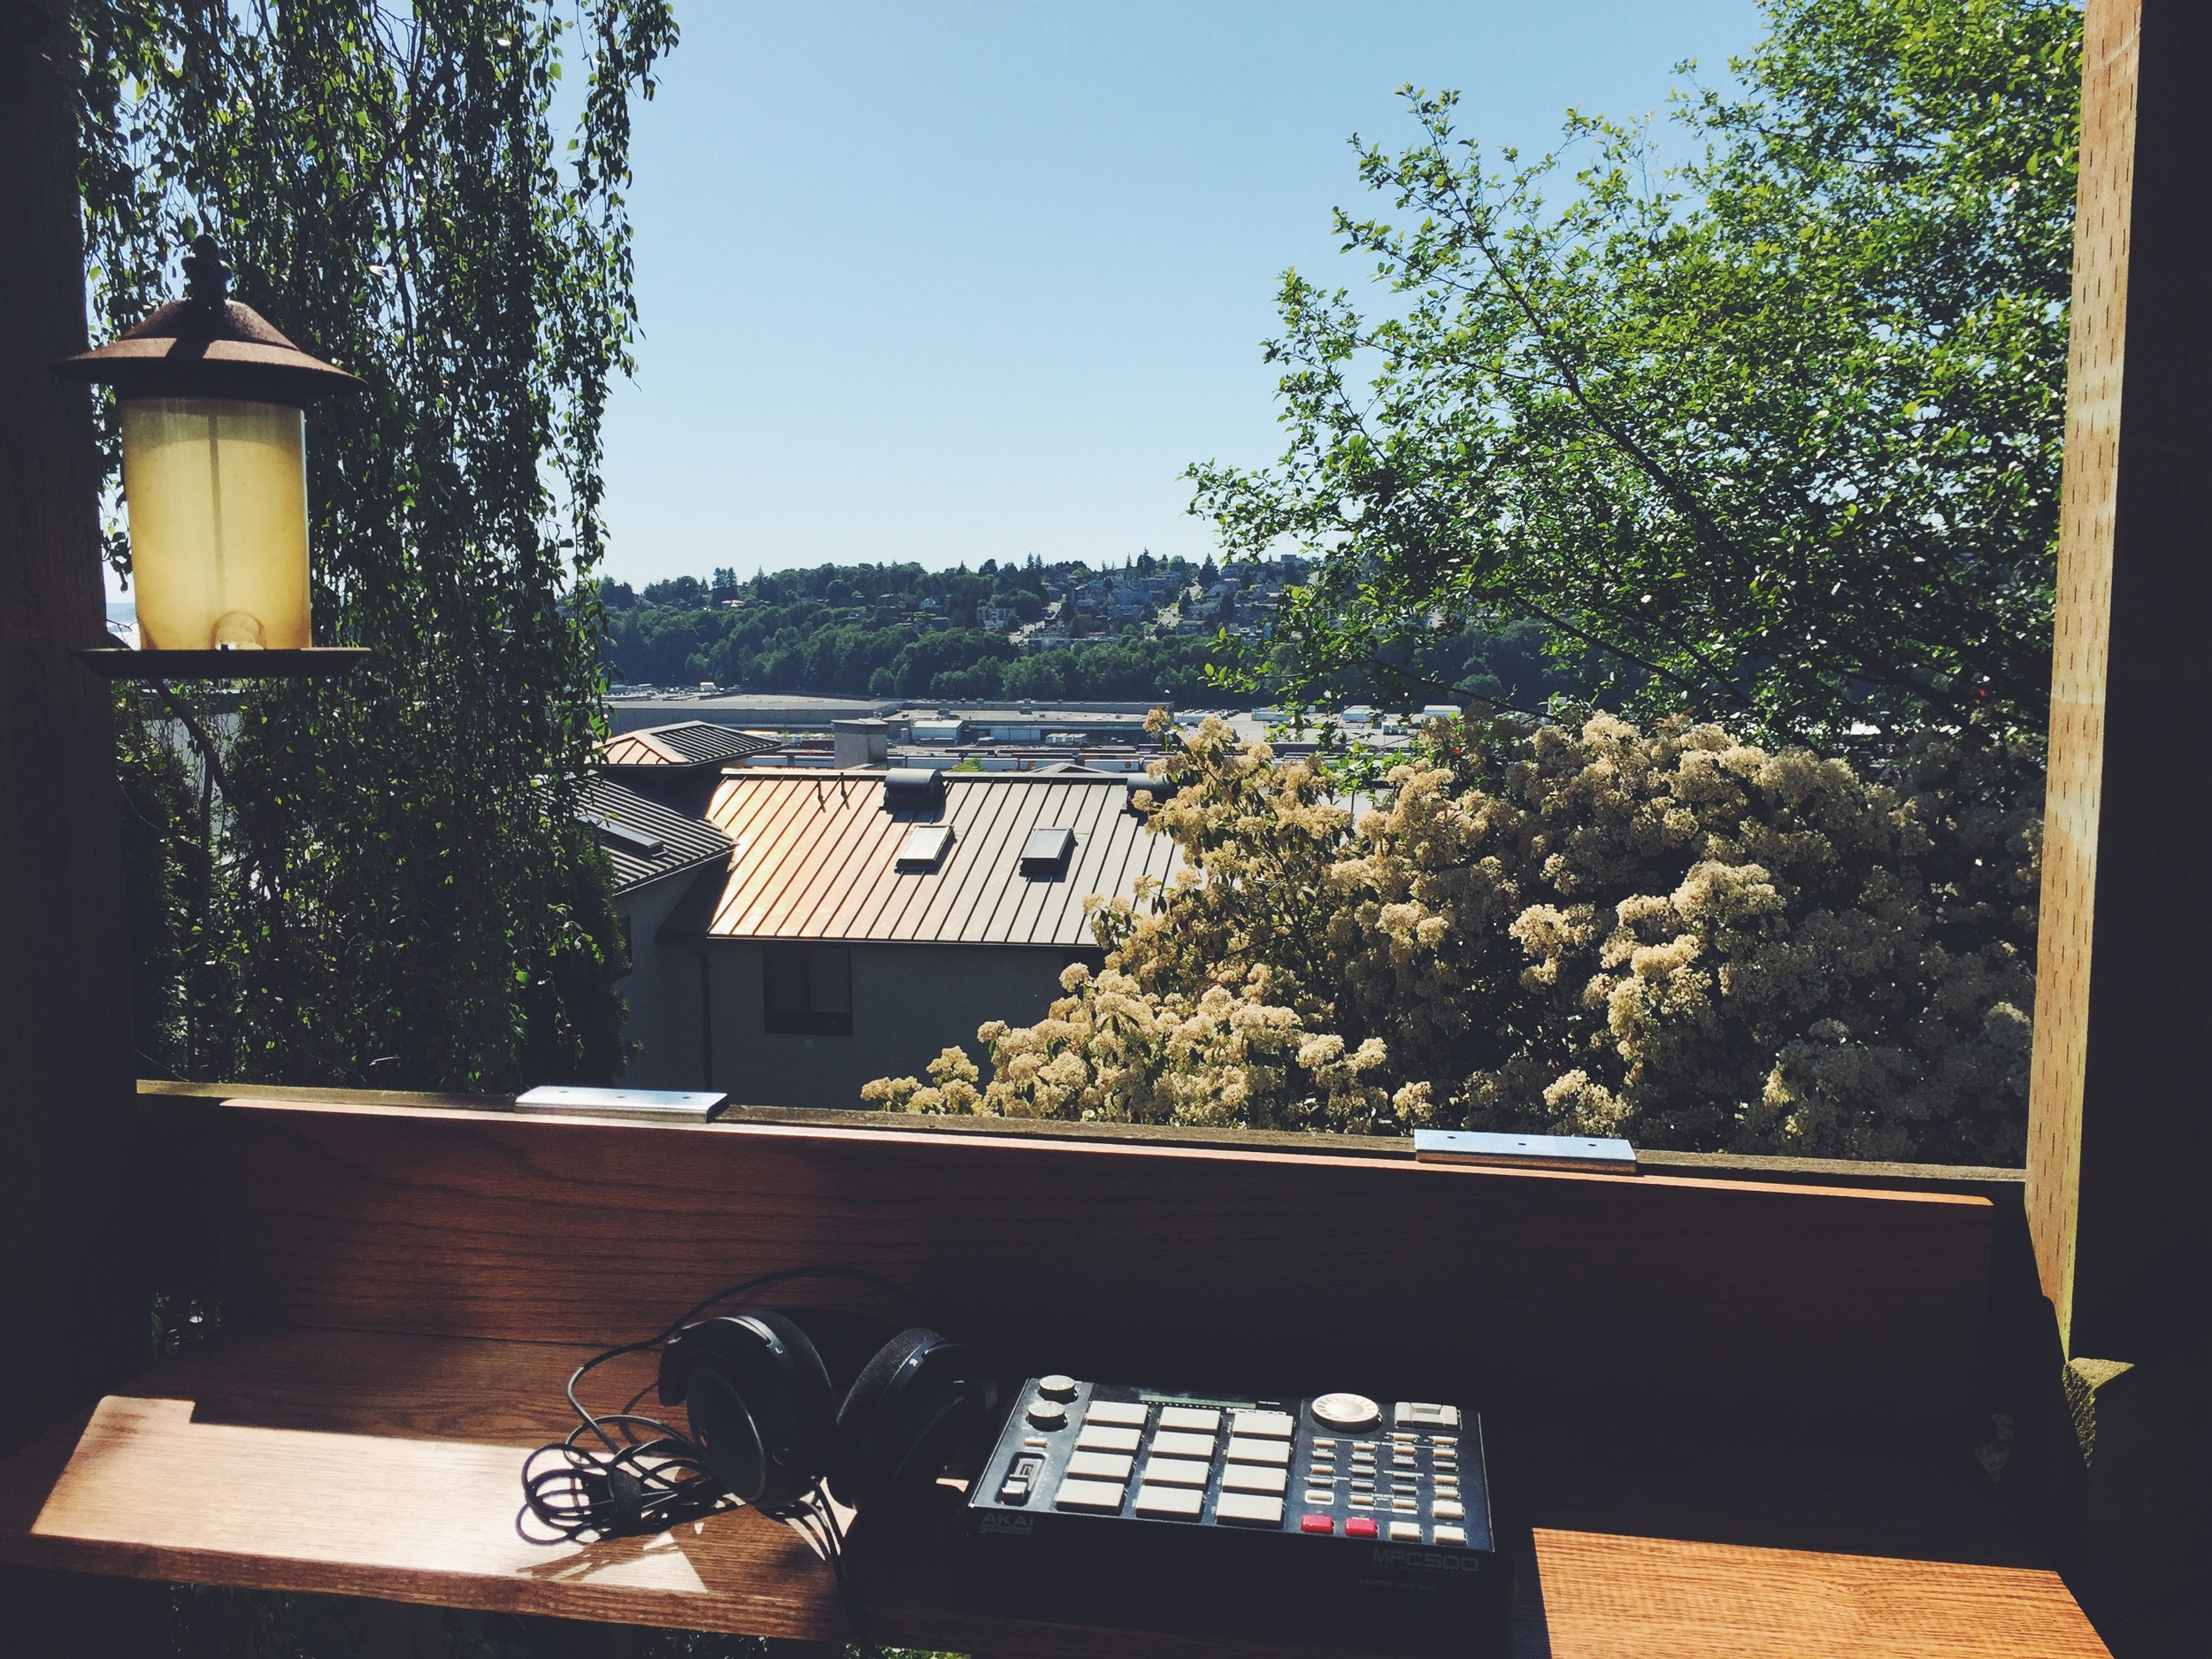 Making beats on my porch with the MPC